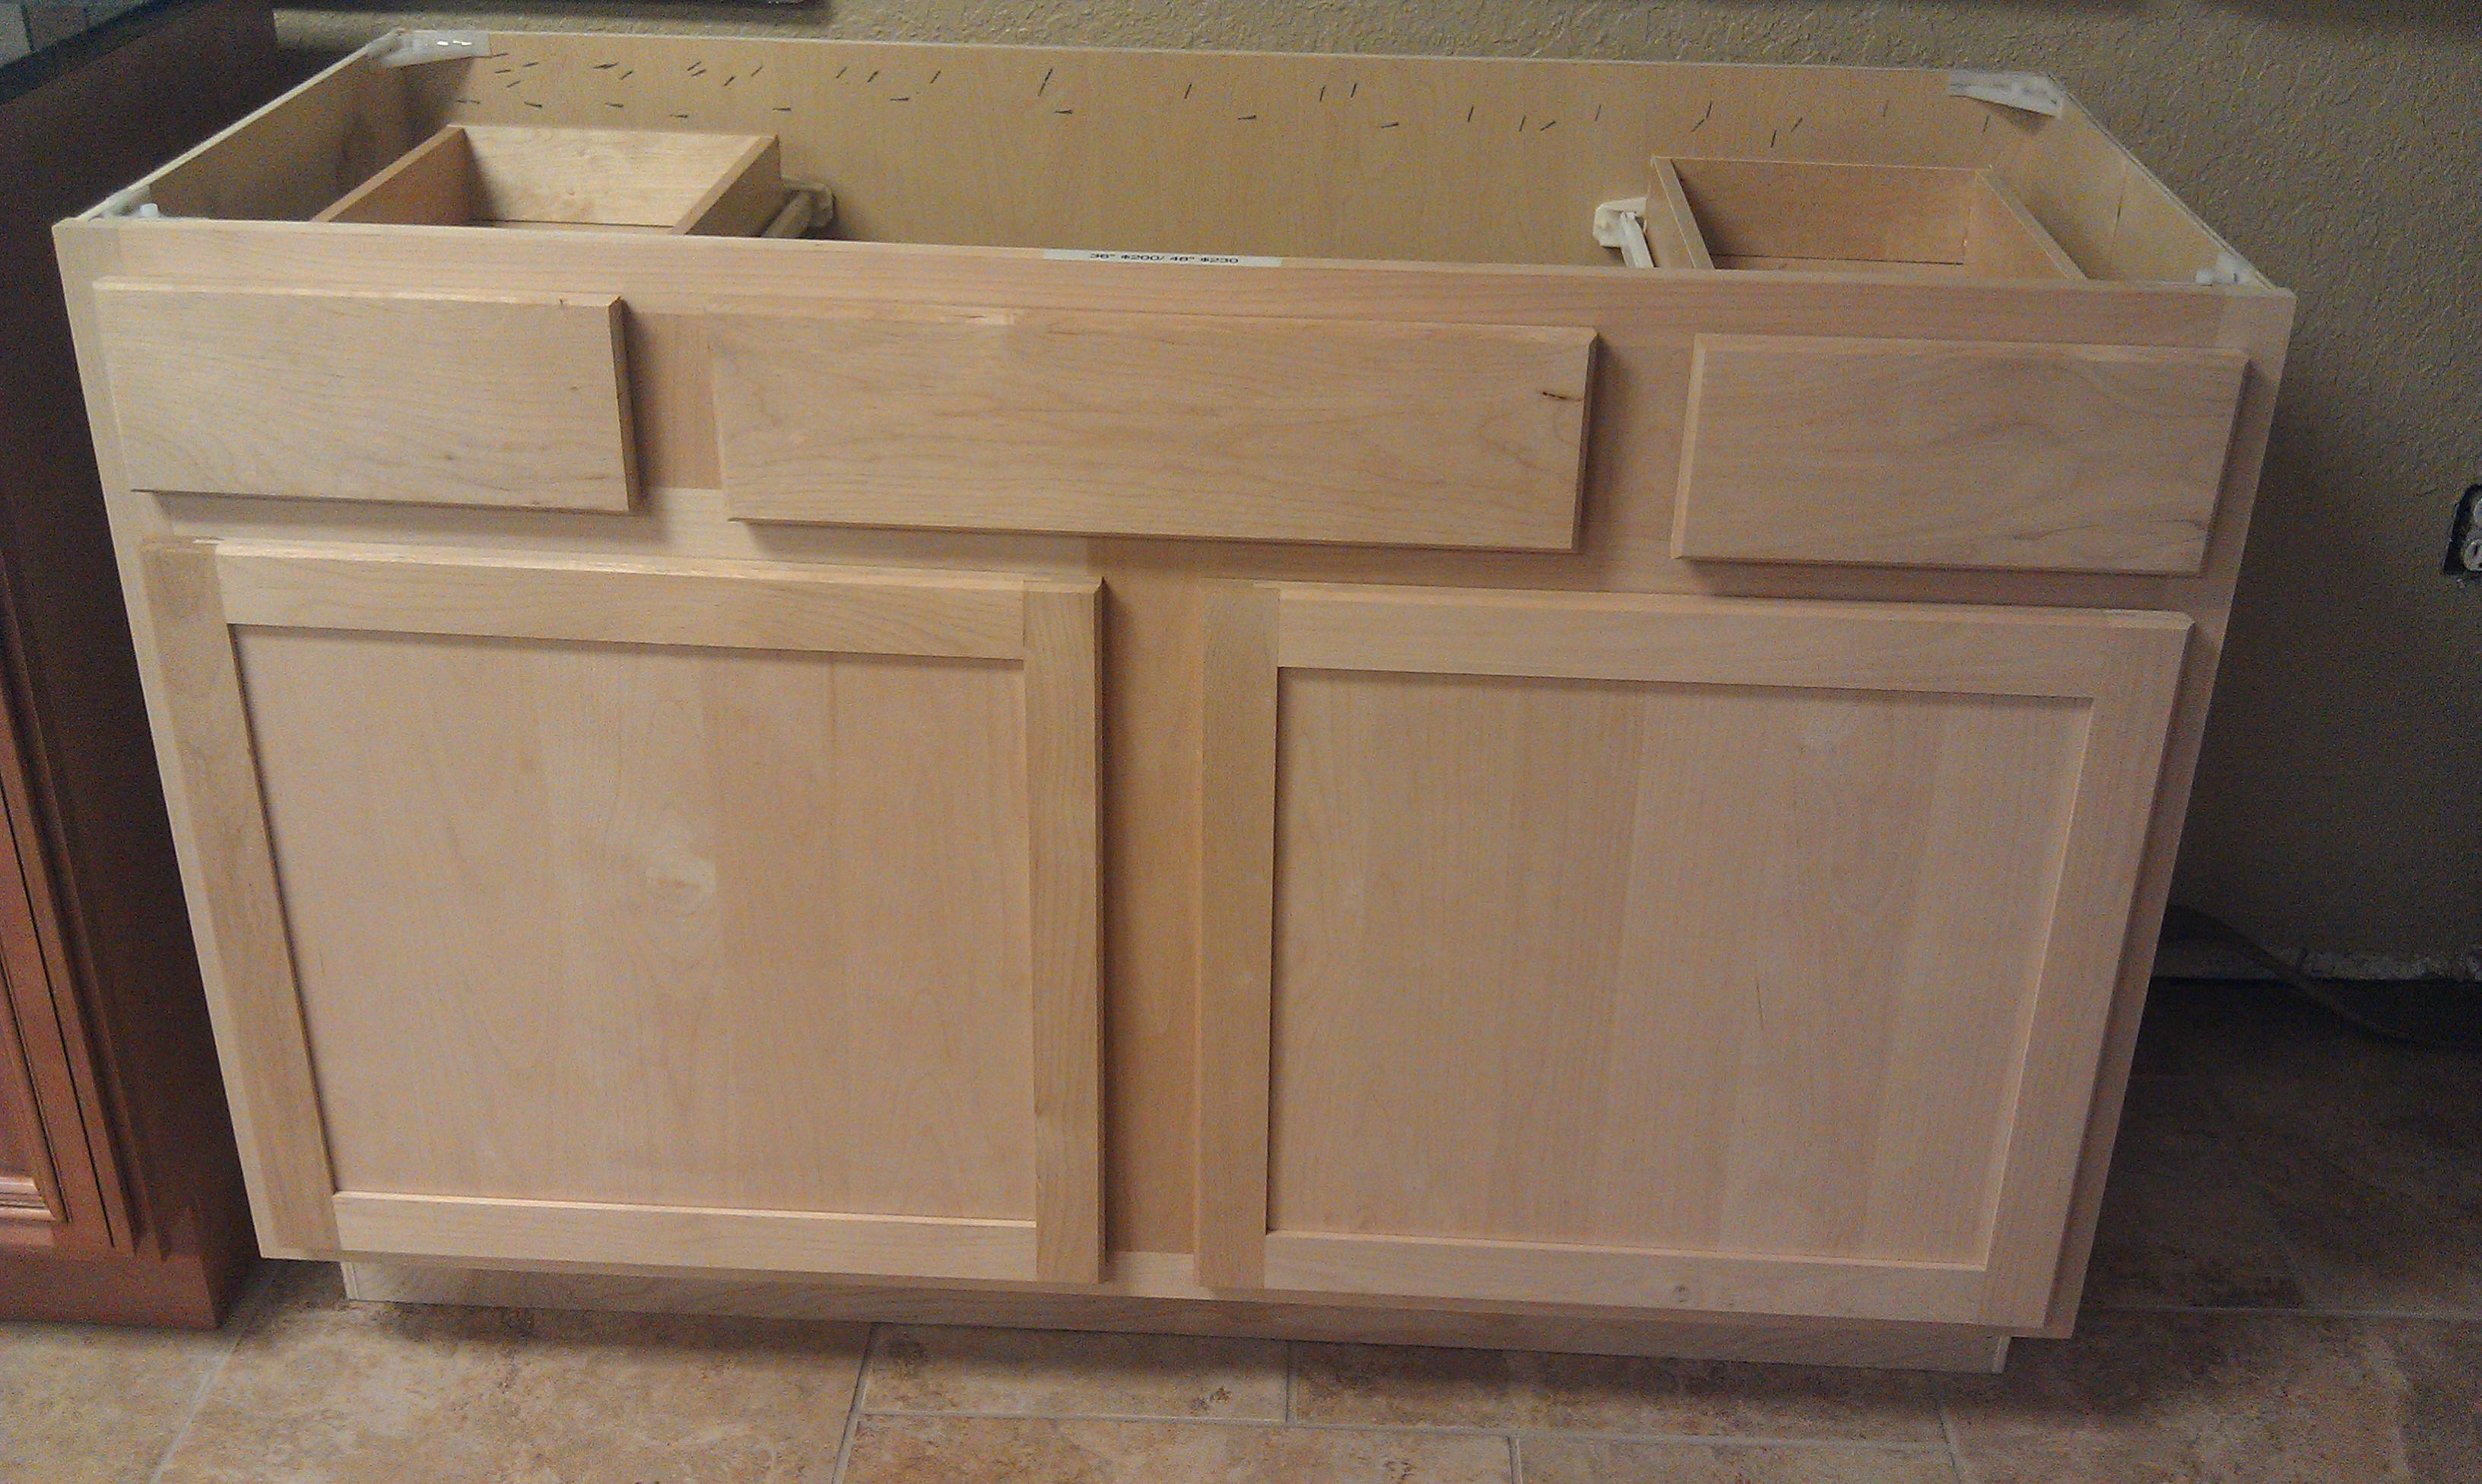 Unfinished Kitchen Cabinets Tampa Unfinished Shaker Style All Wood Cabinets In Stock